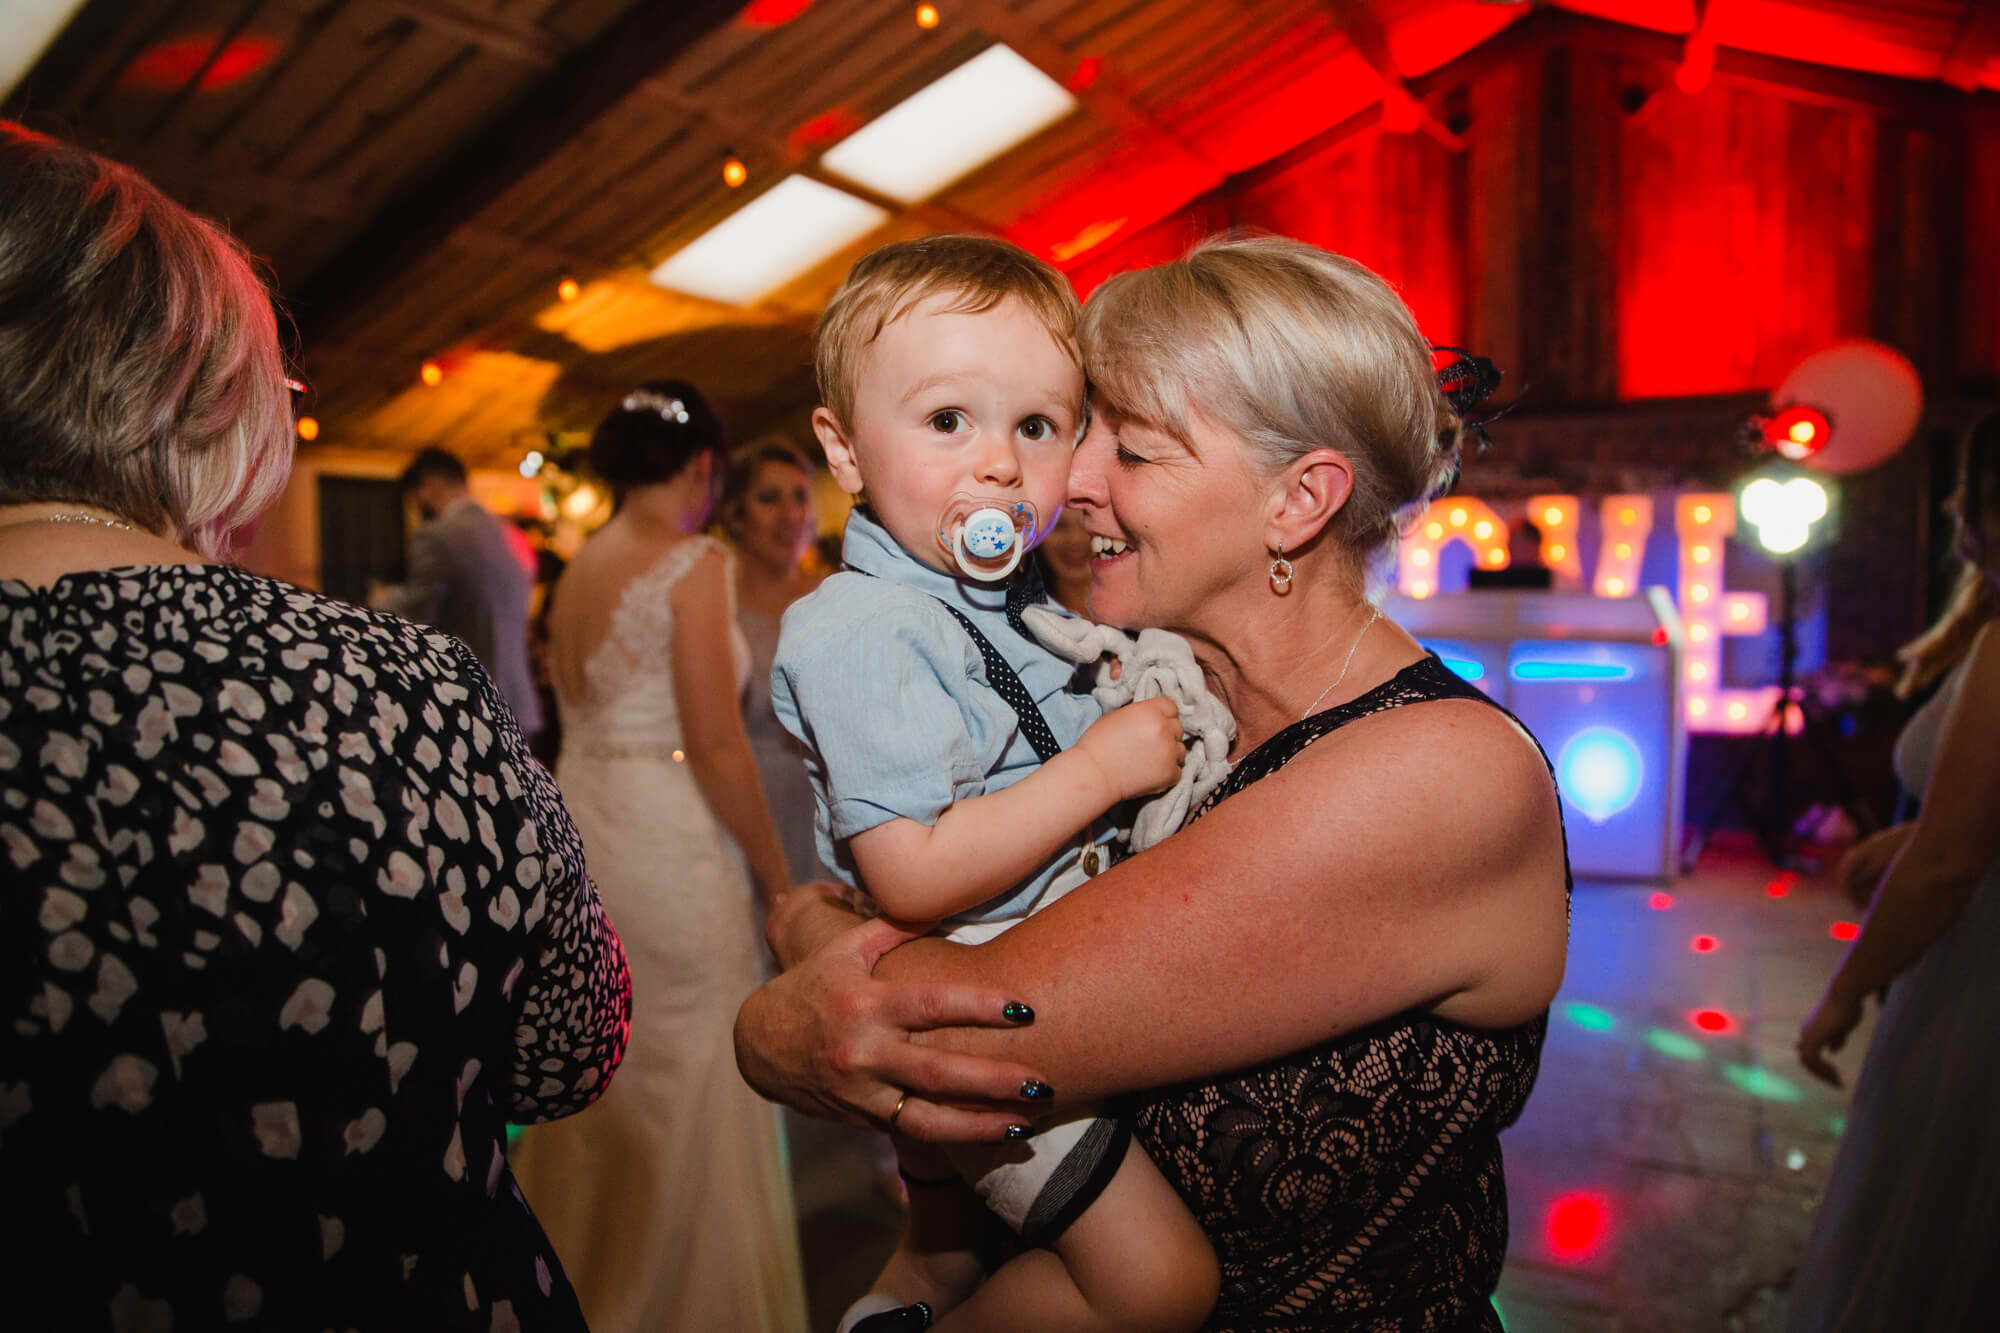 page boy being held on dance floor for intimate photograph looking into camera